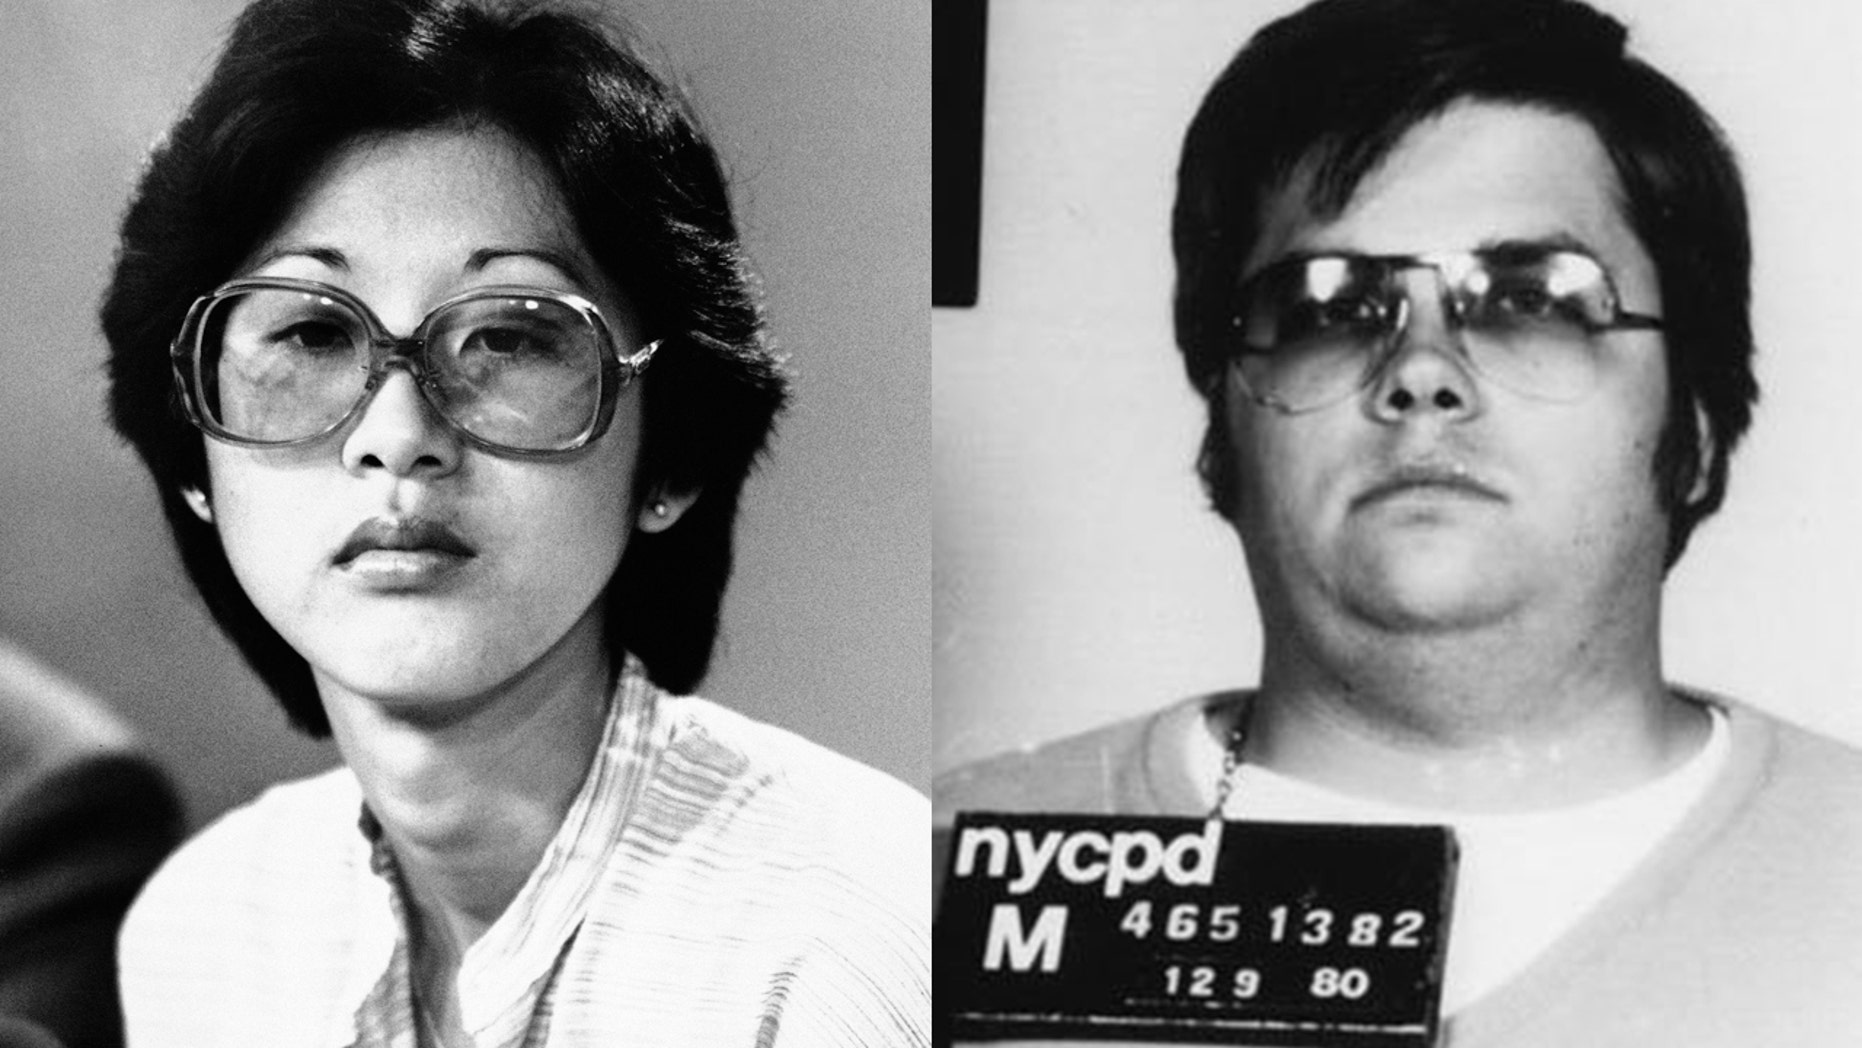 John Lennon's assassin's wife reveals she knew of plans to murder the Beatle two months before her husband shot him dead in 1980